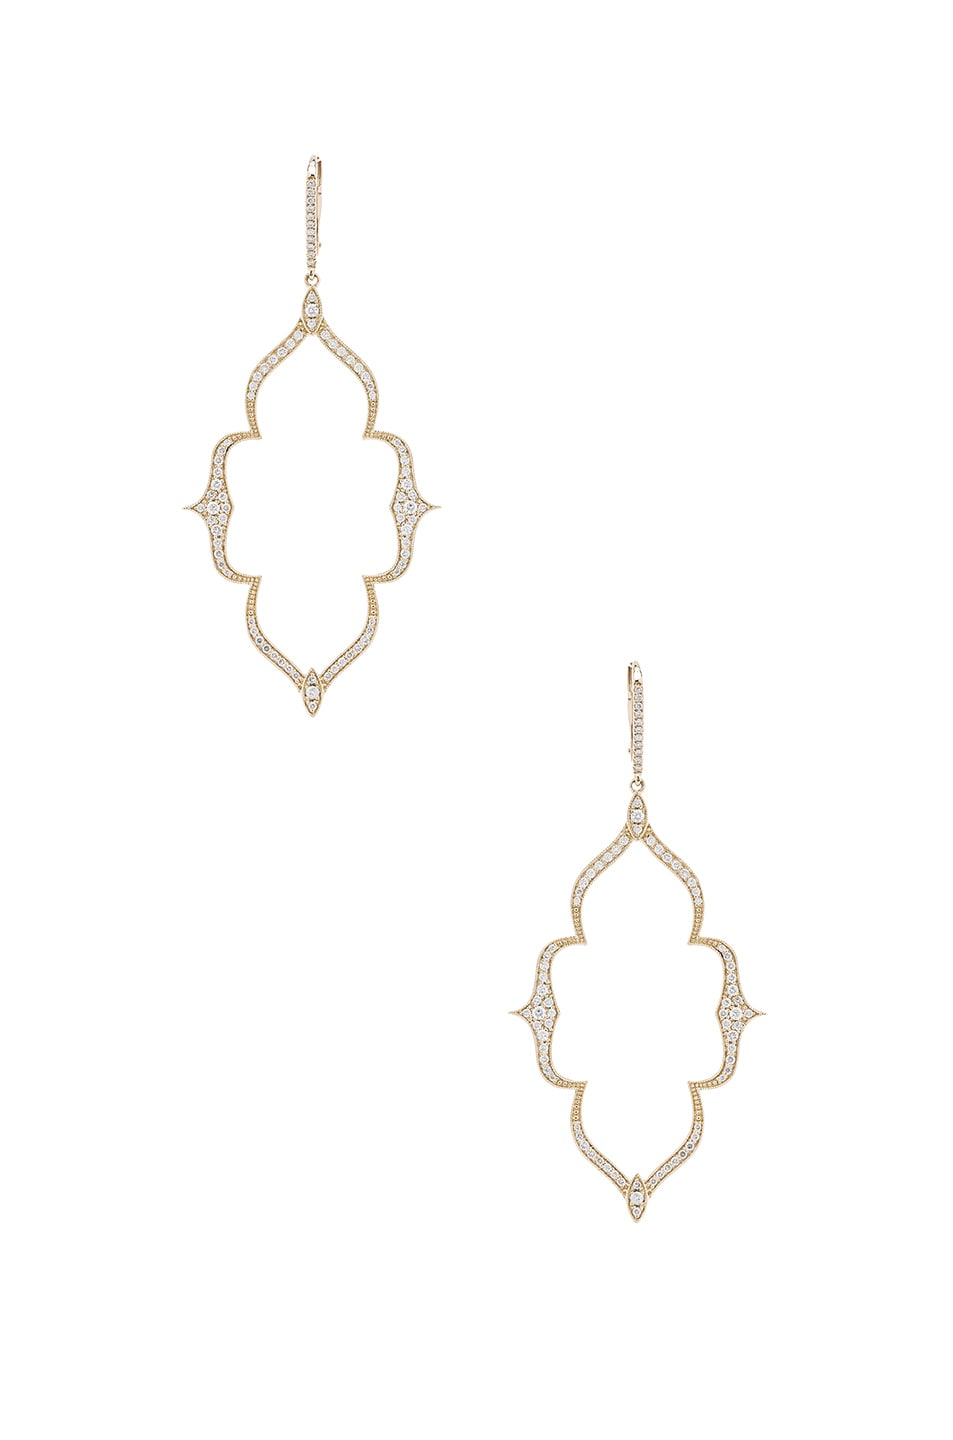 STONE PARIS MOON RIVER EARRINGS IN METALLICS